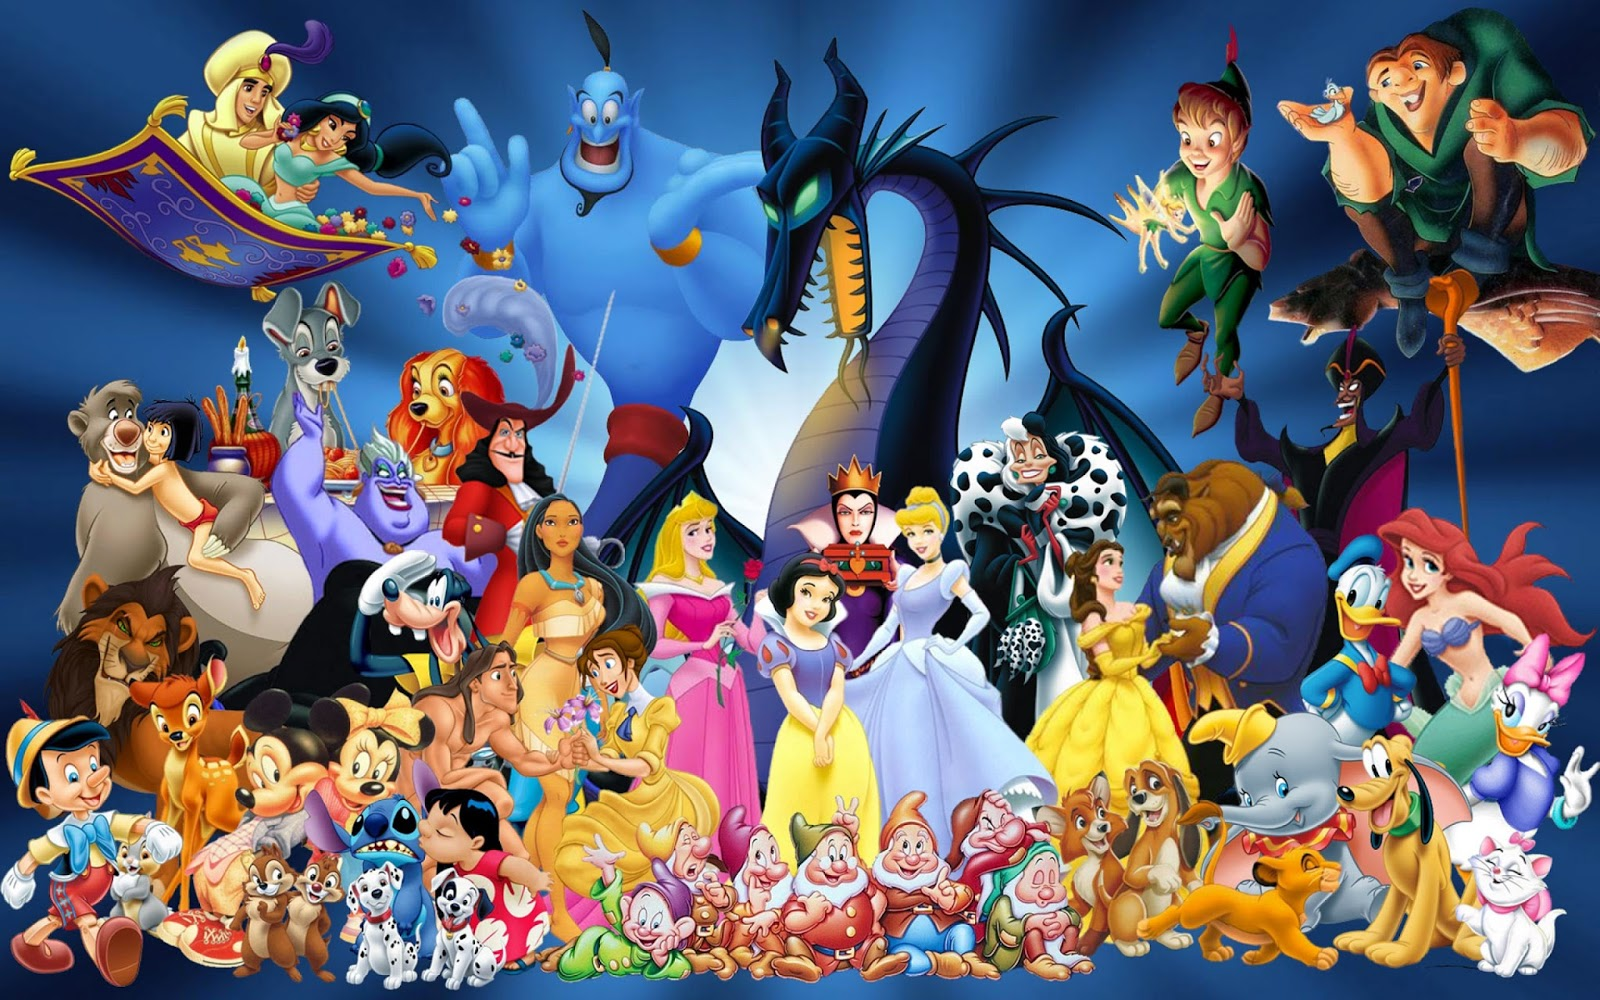 Disney HD Wallpapers Download HD WALLPAERS 4U FREE DOWNLOAD 1600x1000